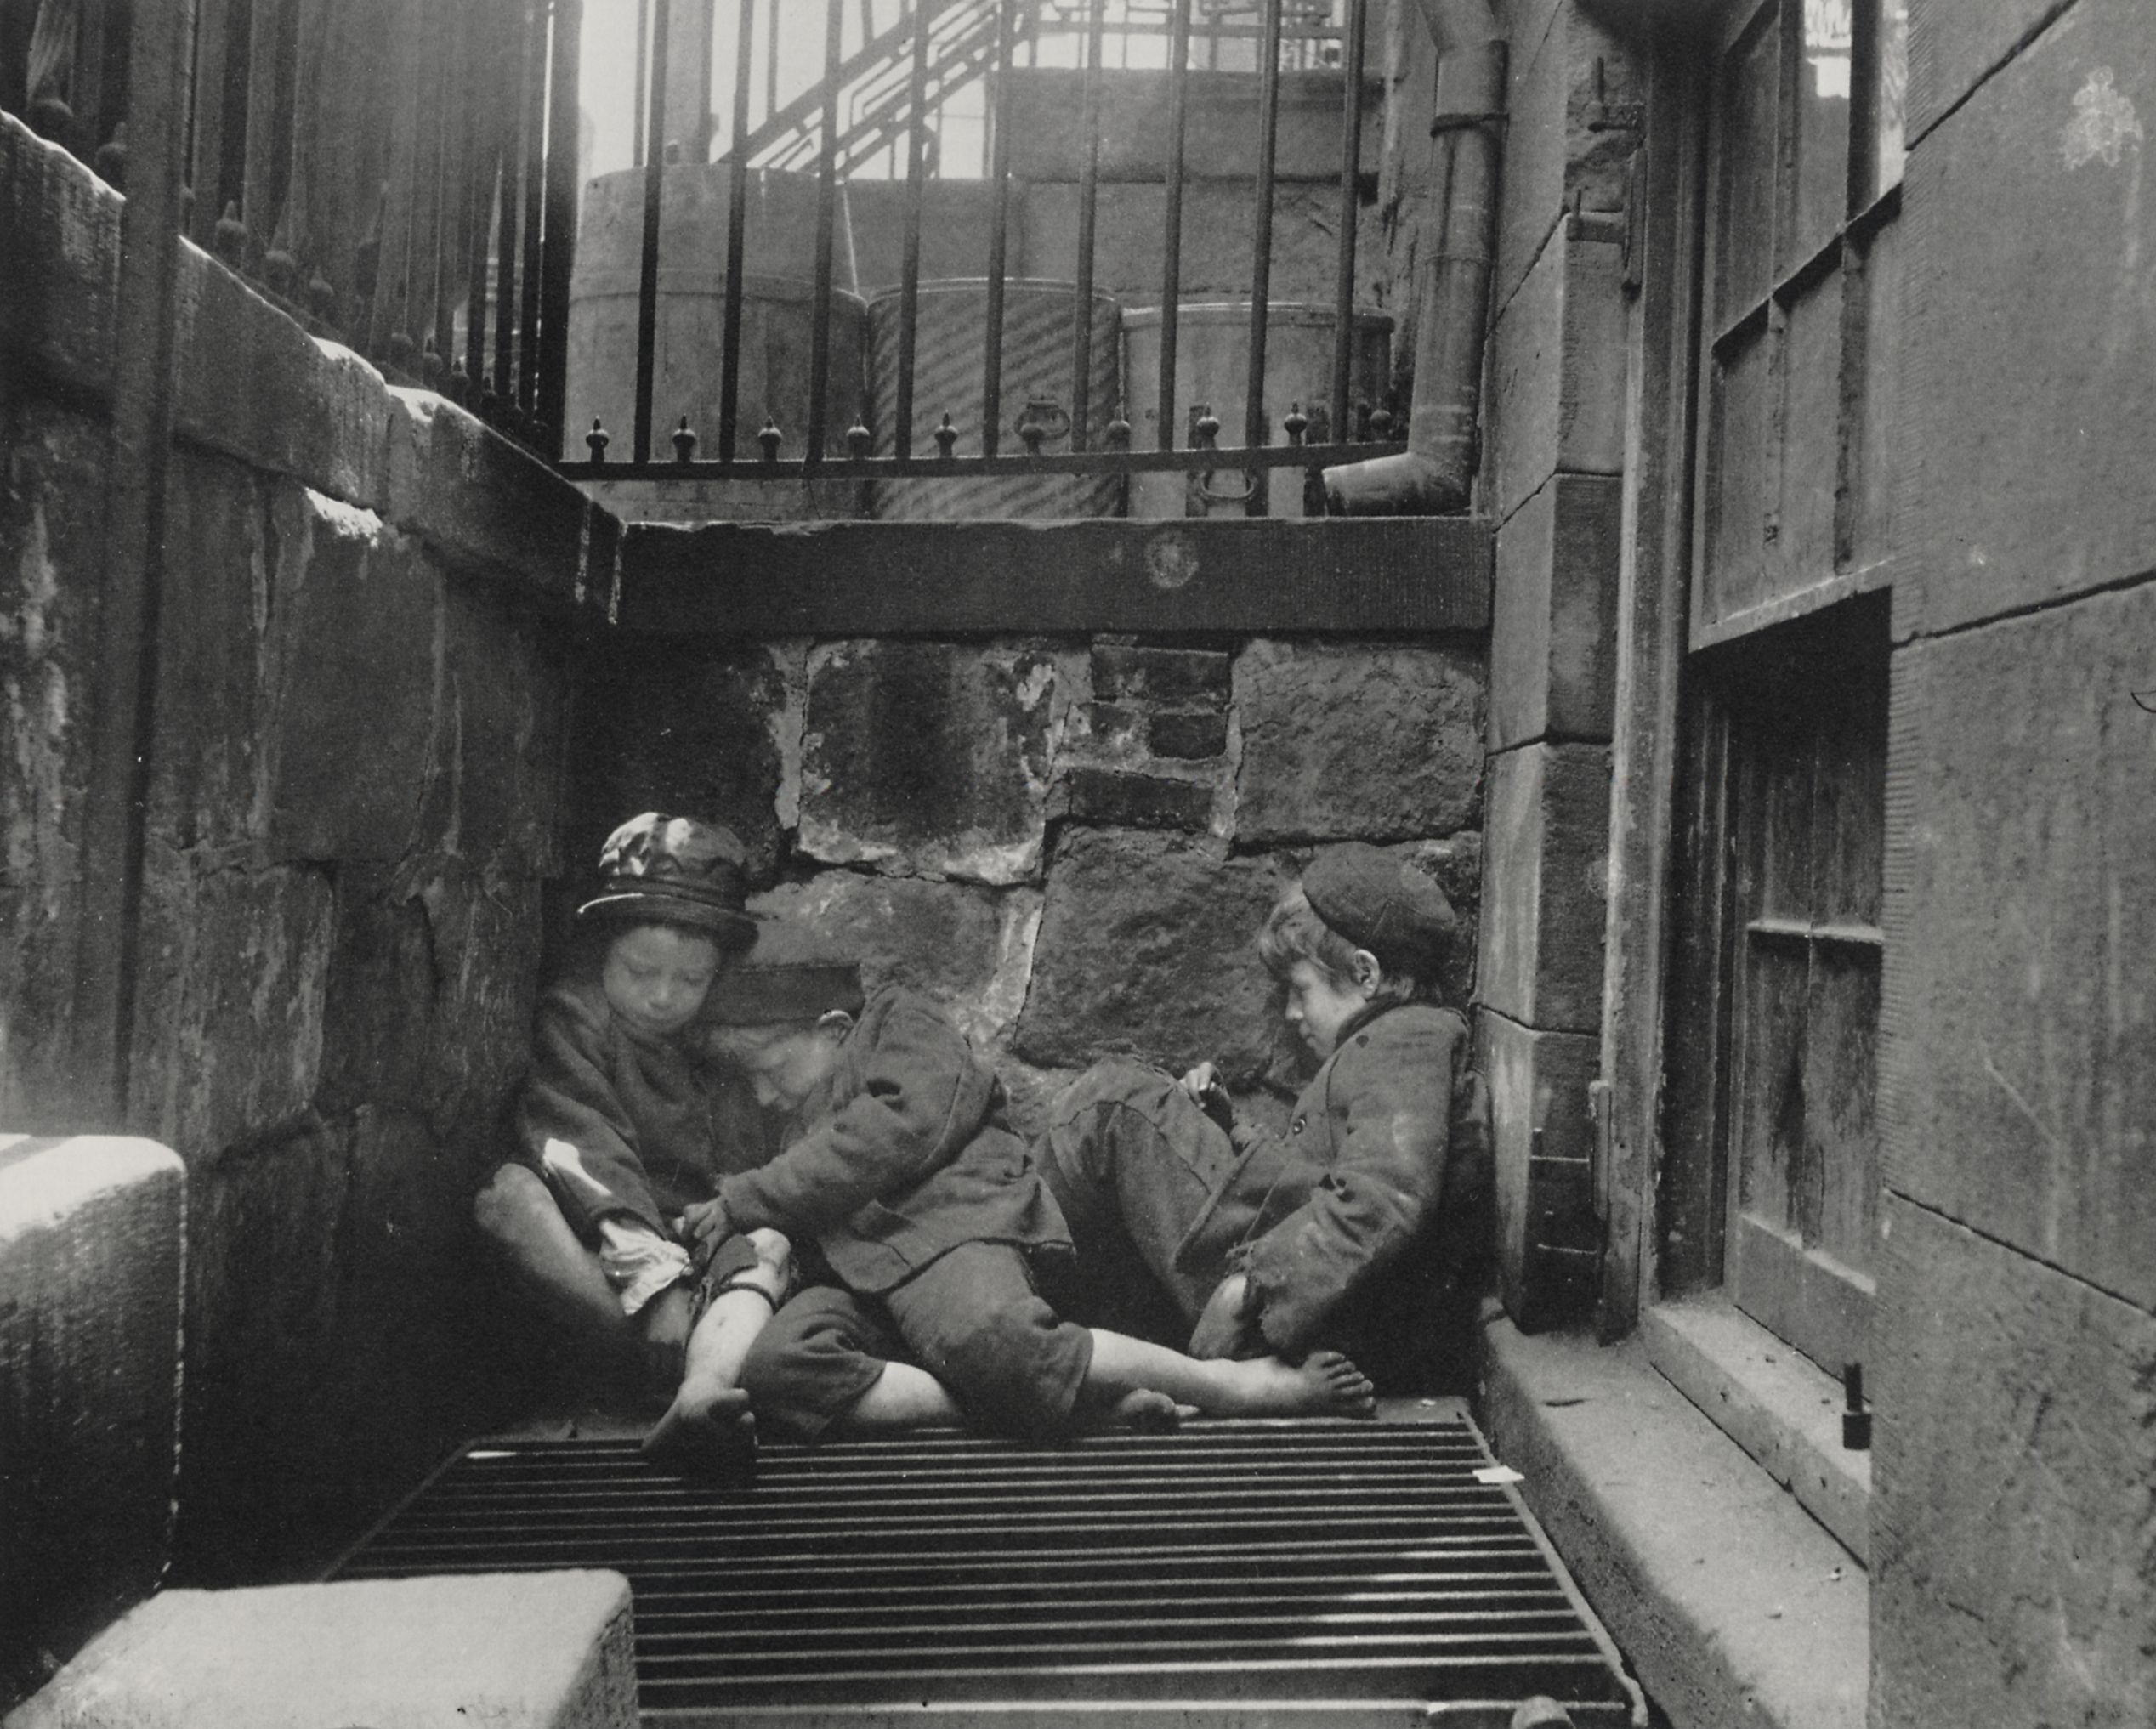 Jacob Riis, Children sleeping in Mulberry Street, New York City, 1890